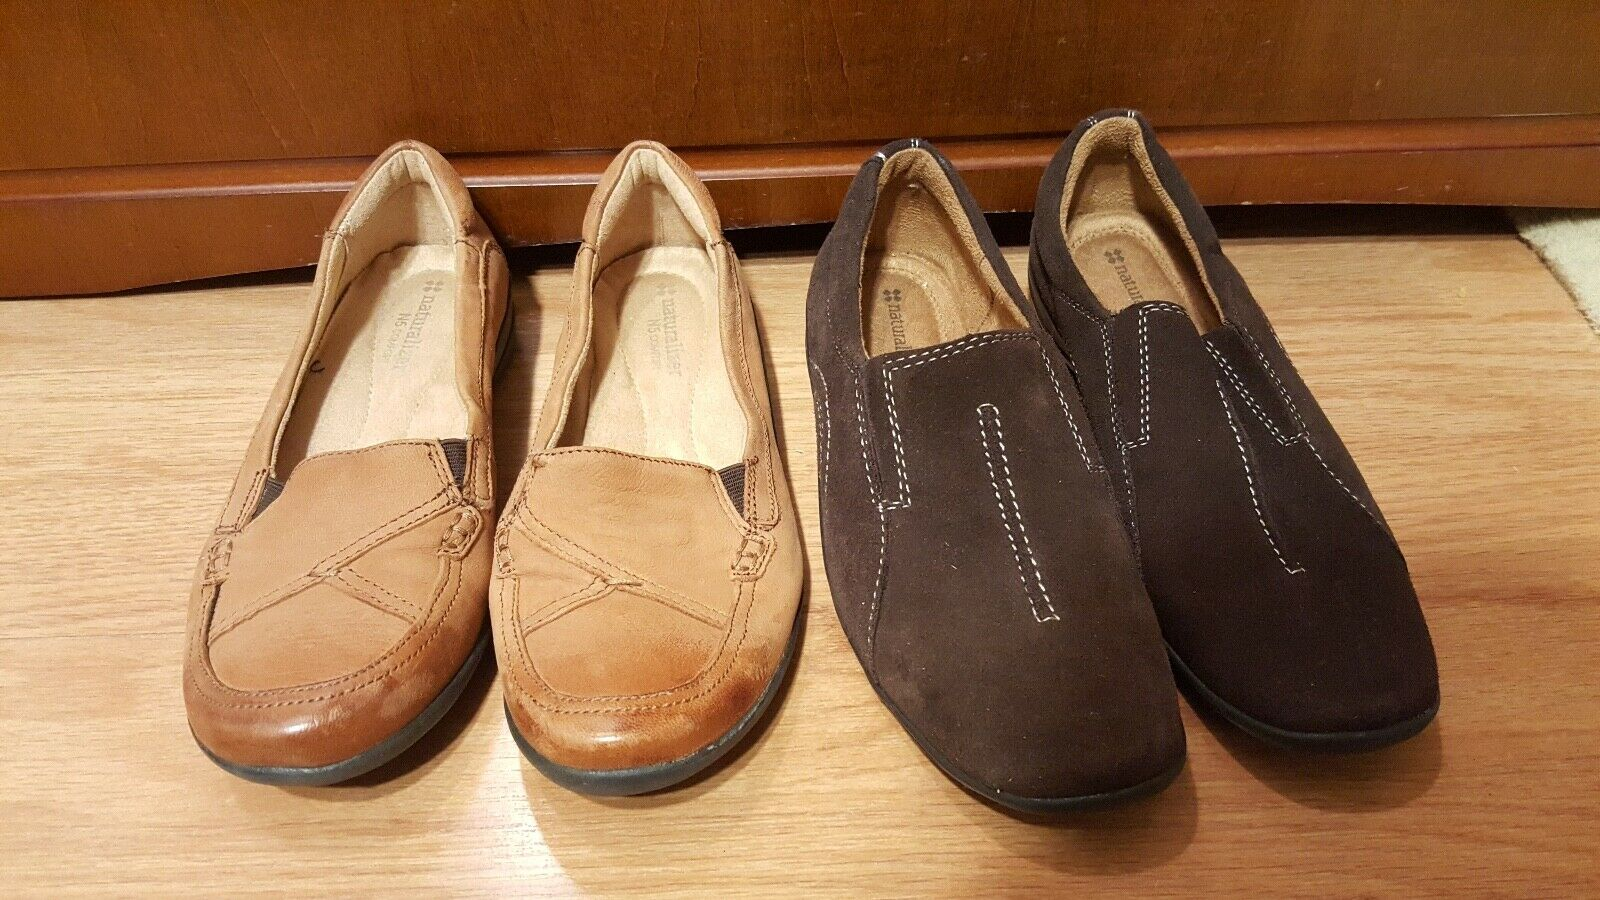 2 Pairs of Women's Naturalizer Flats Size 7.5